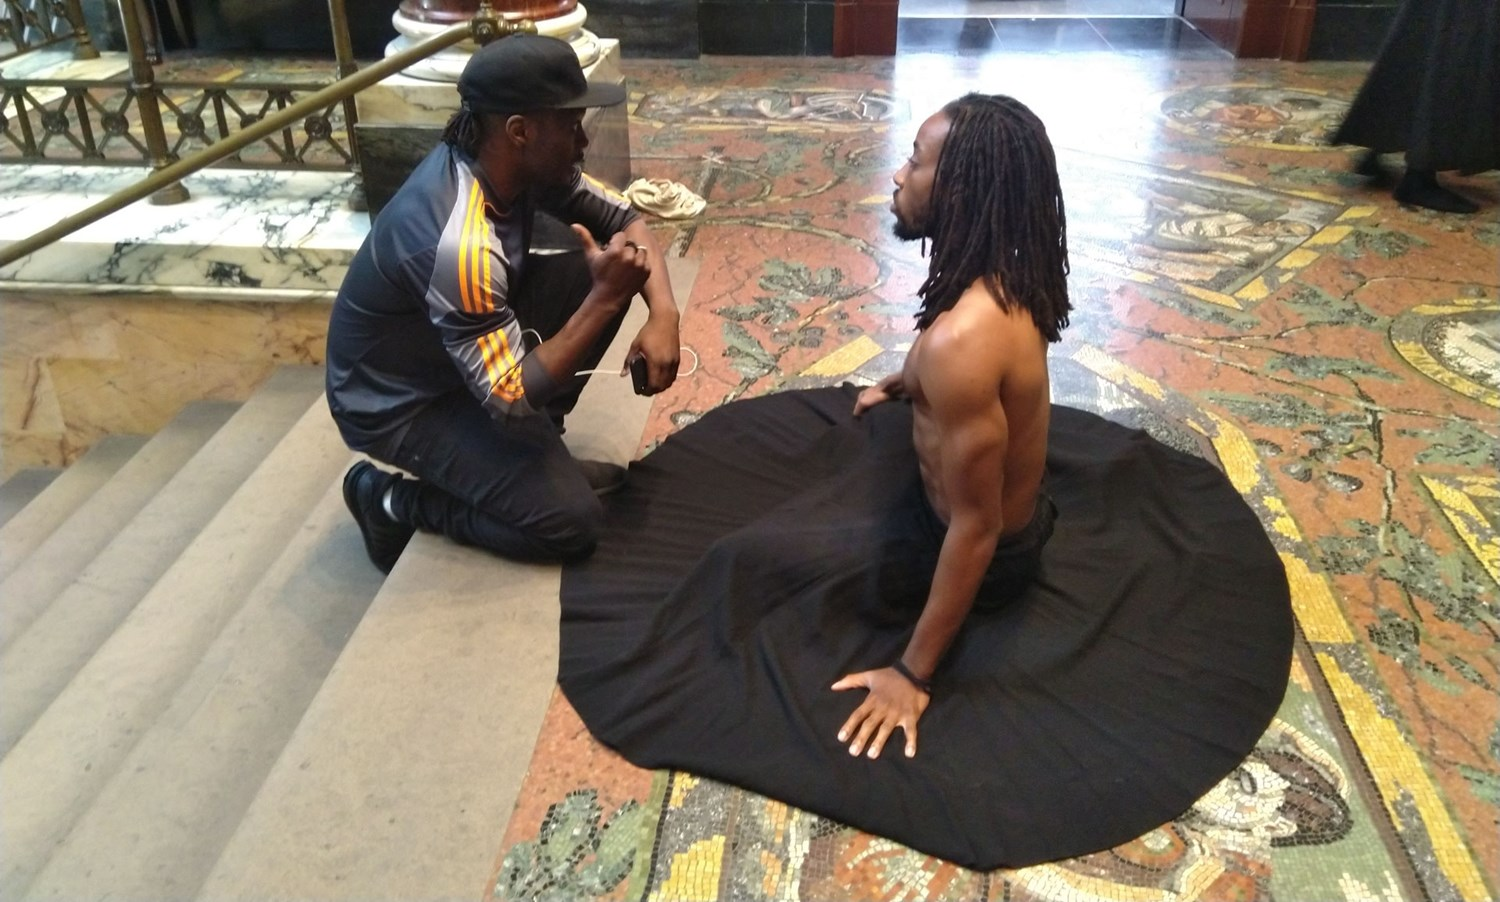 Choreographer Tony Adigun rehearsing with dancer Ajani Johnson-Goffe in the National Gallery's Portico